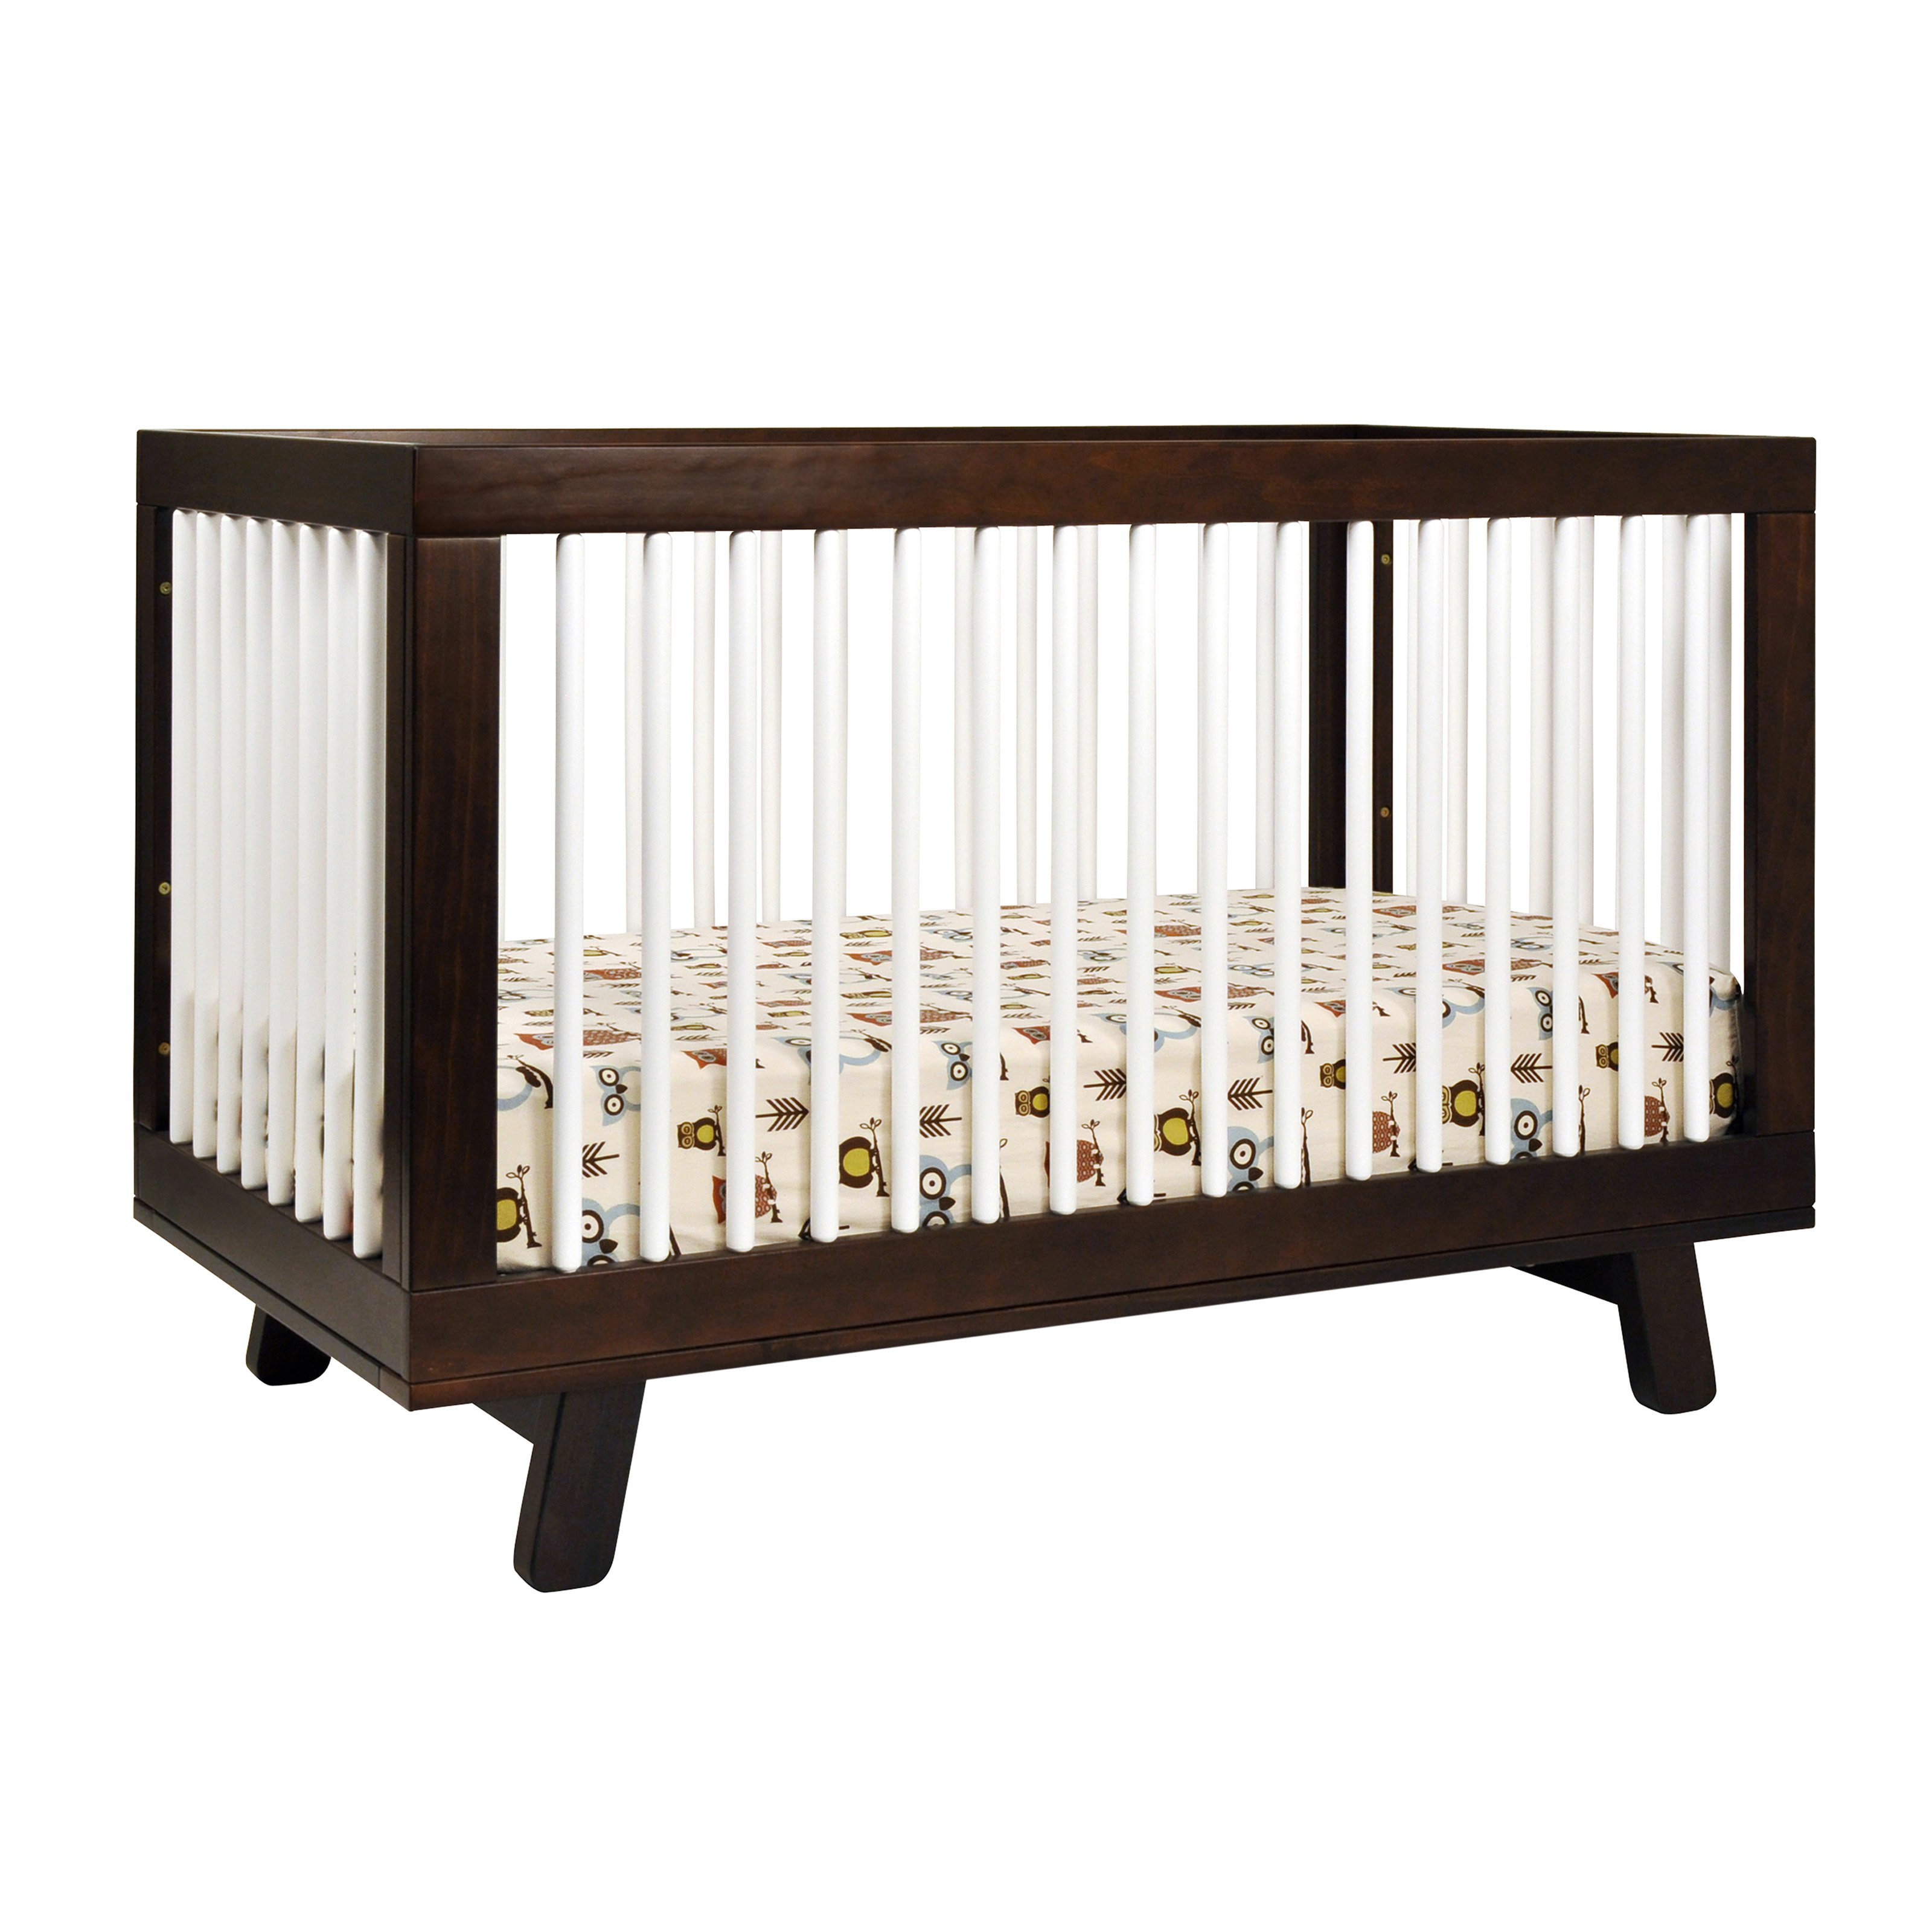 Babyletto Hudson 3-in-1 Convertible Crib with Toddler Rail, Espresso